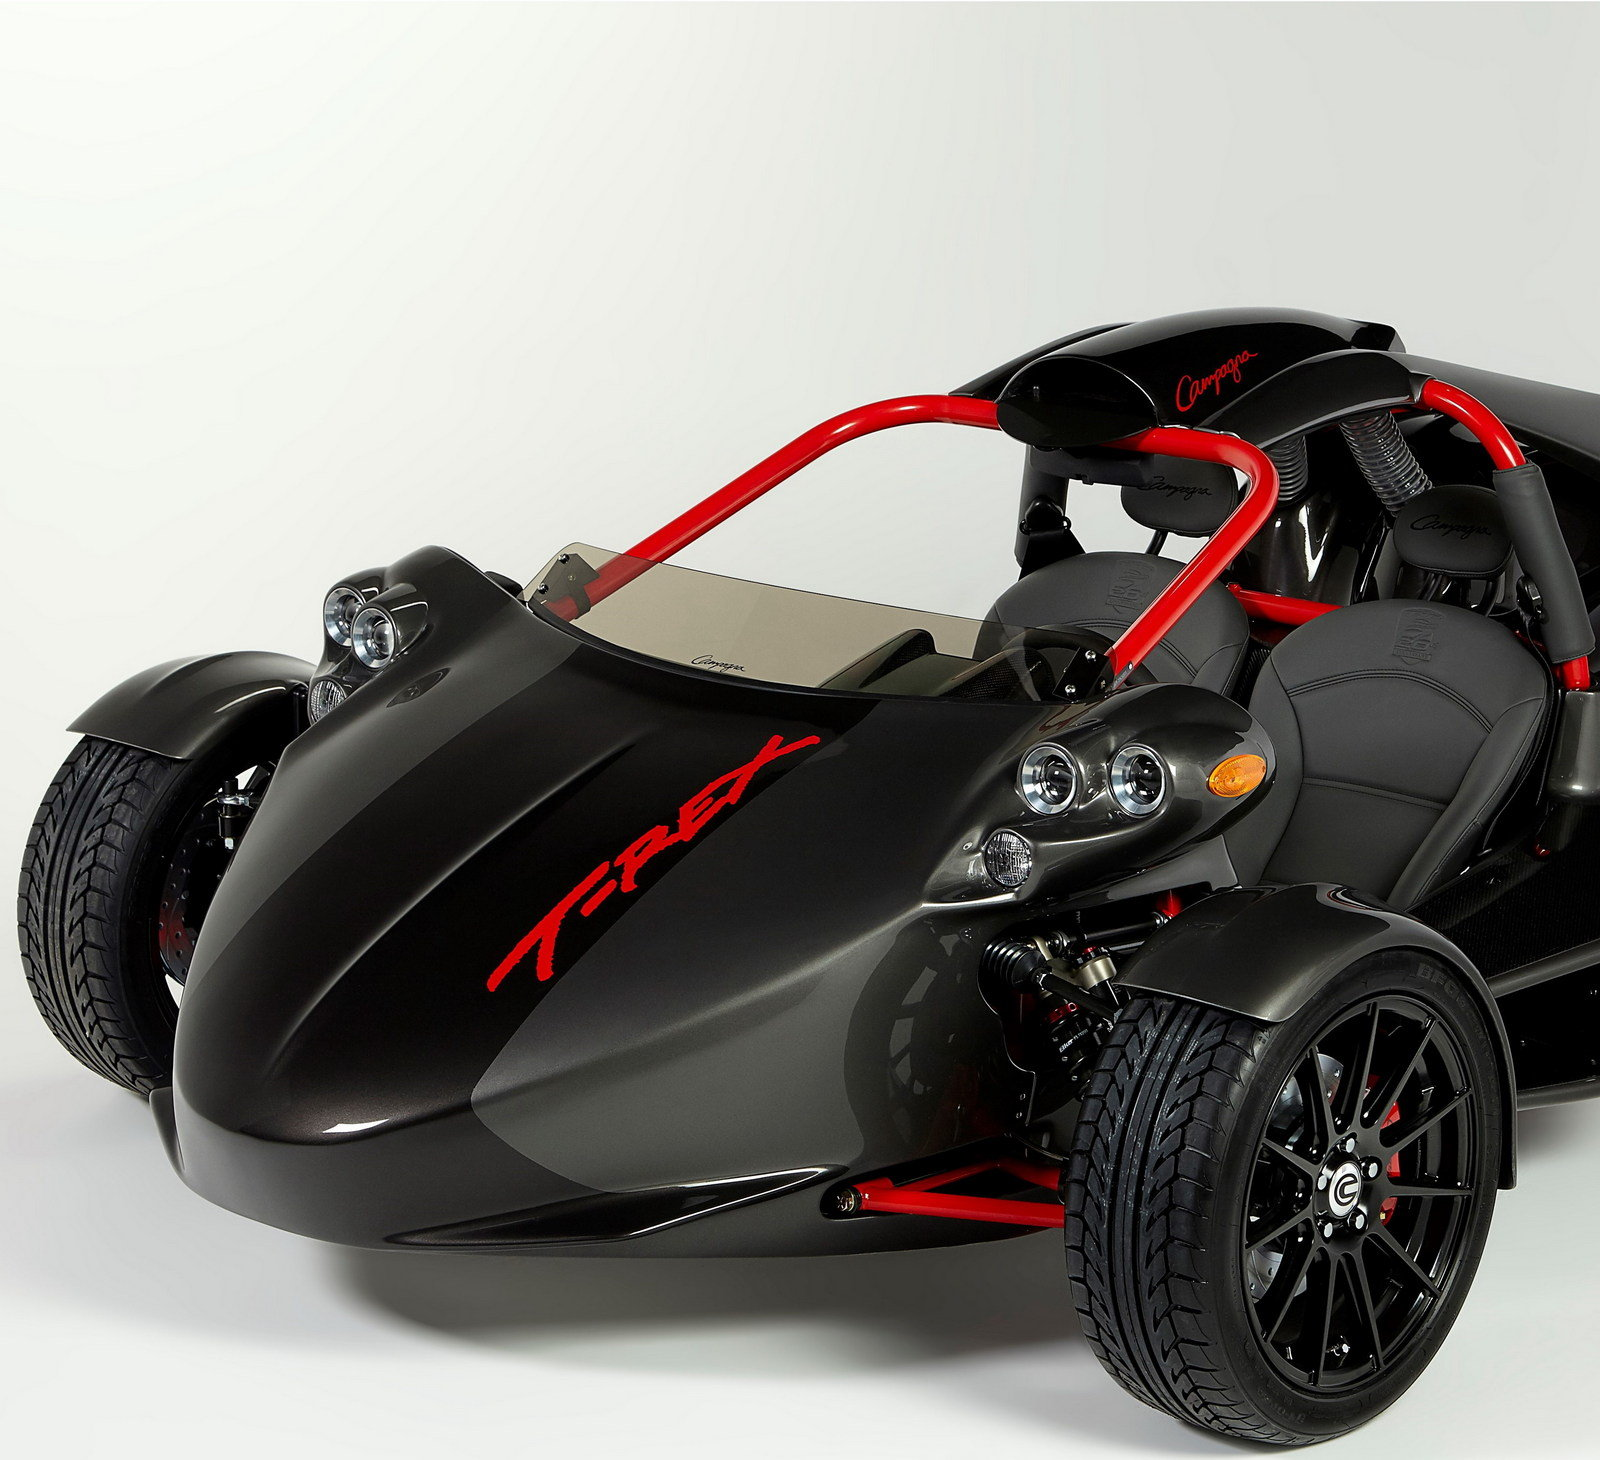 2015 campagna t rex 20th anniversary edition picture 622803 car review top speed. Black Bedroom Furniture Sets. Home Design Ideas